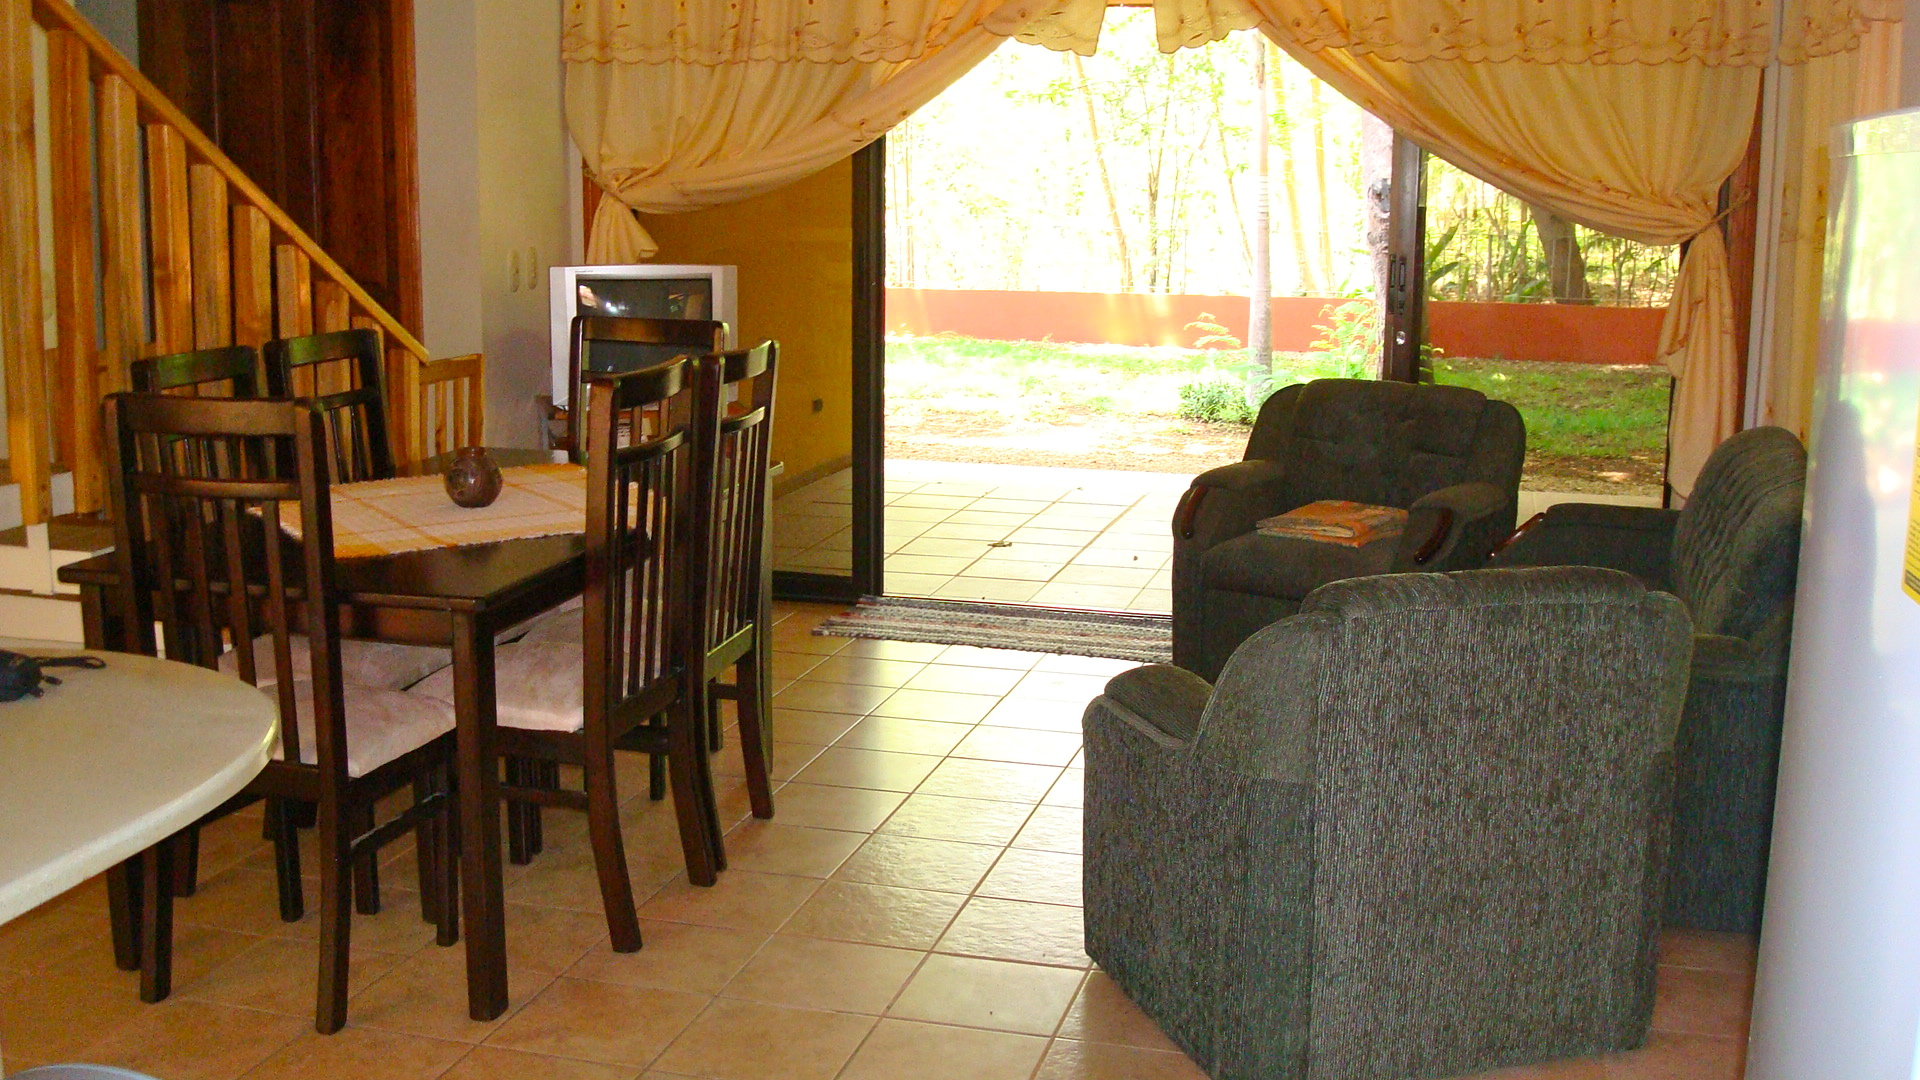 House with 175 m2, 3 bedrooms., 3 bathrooms, terrace and tropical garden in the center of Samara